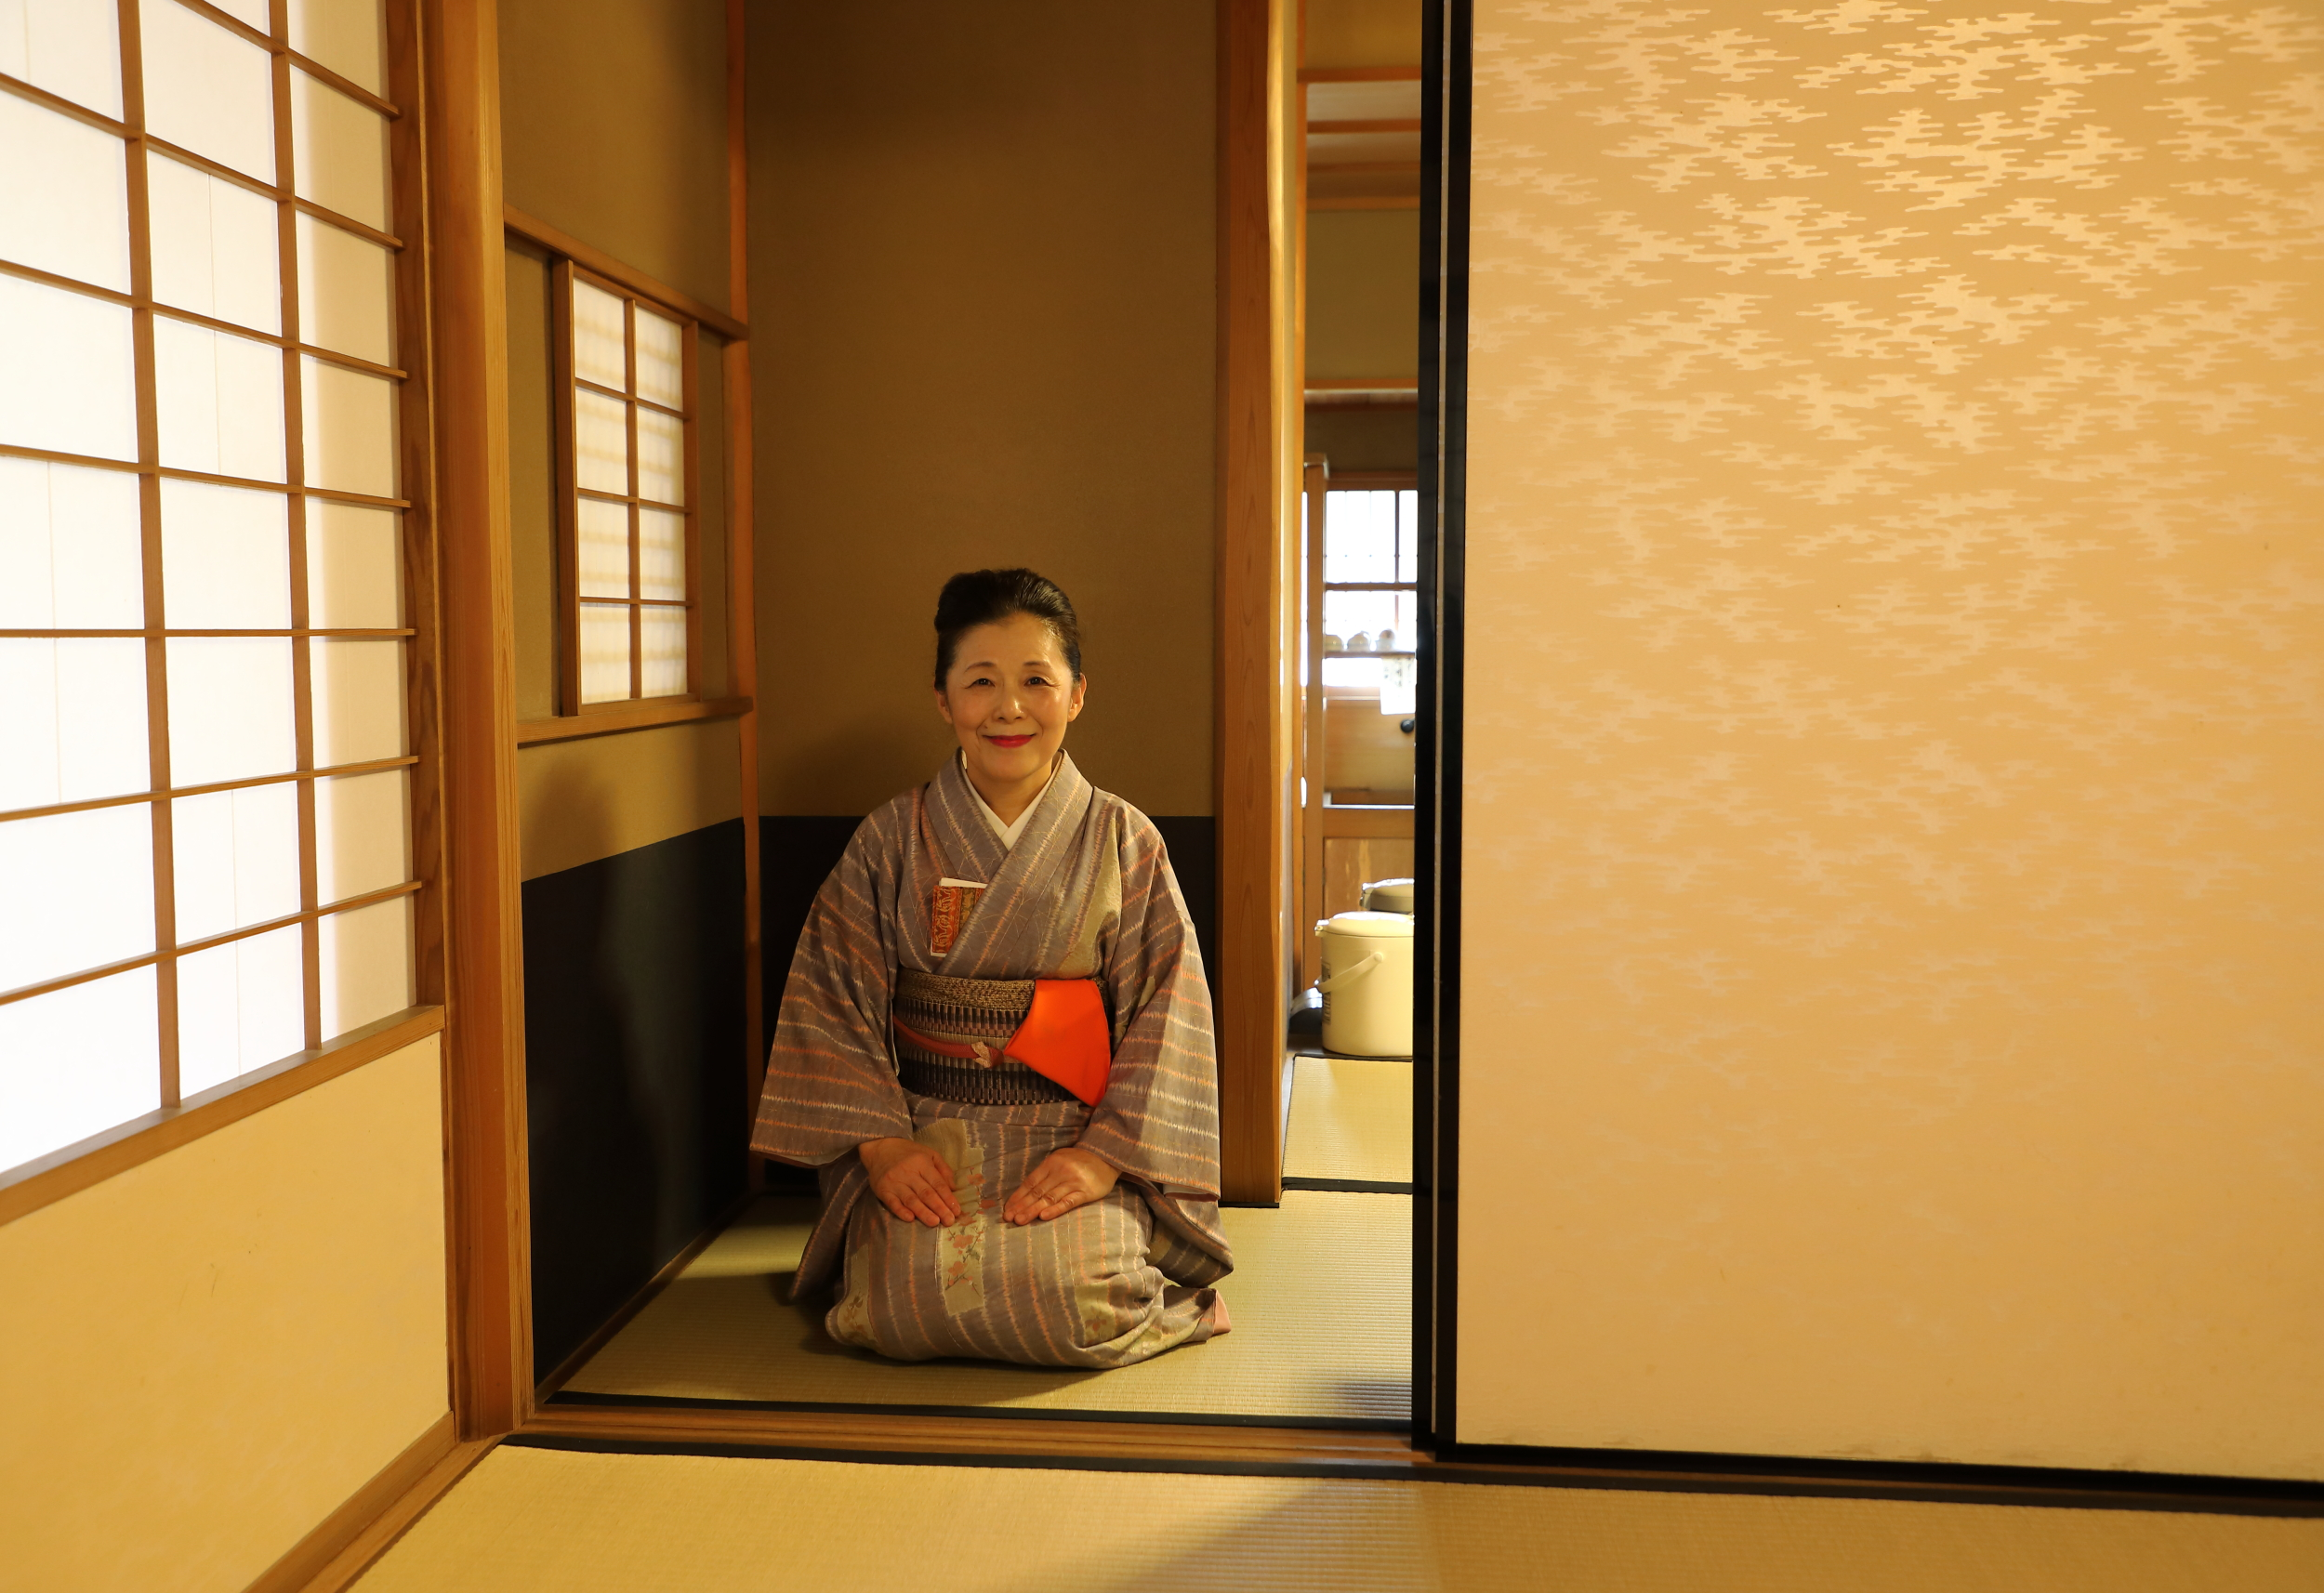 A  chanoyu  tea instructor entering the tea room at Taiho-an.